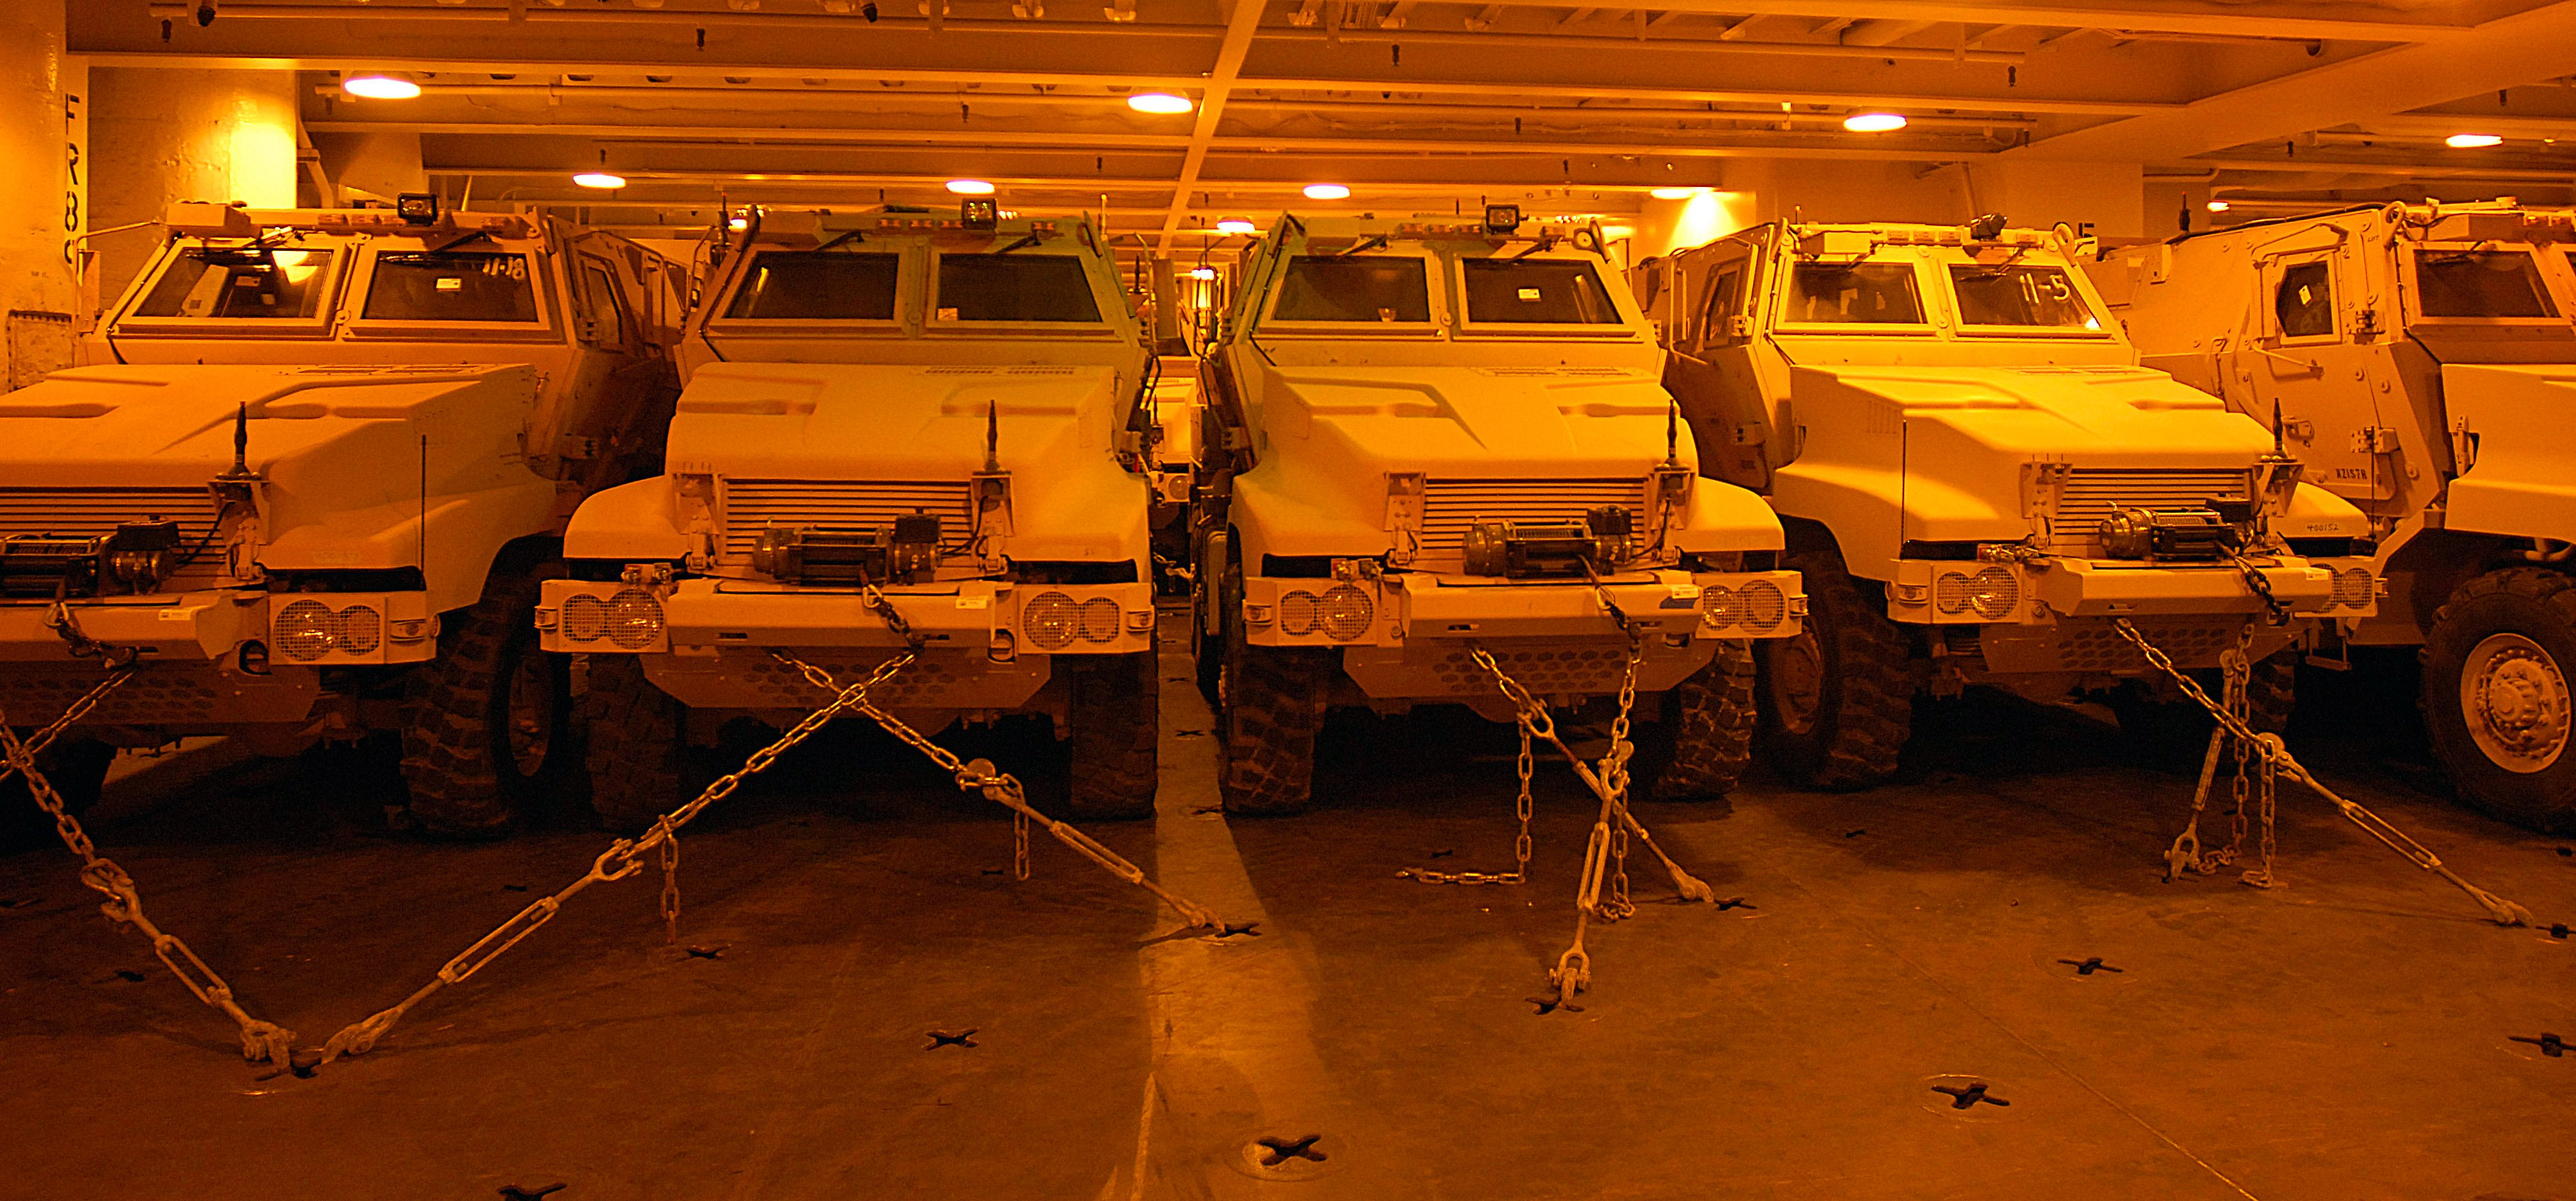 MRAPs On the Way Out